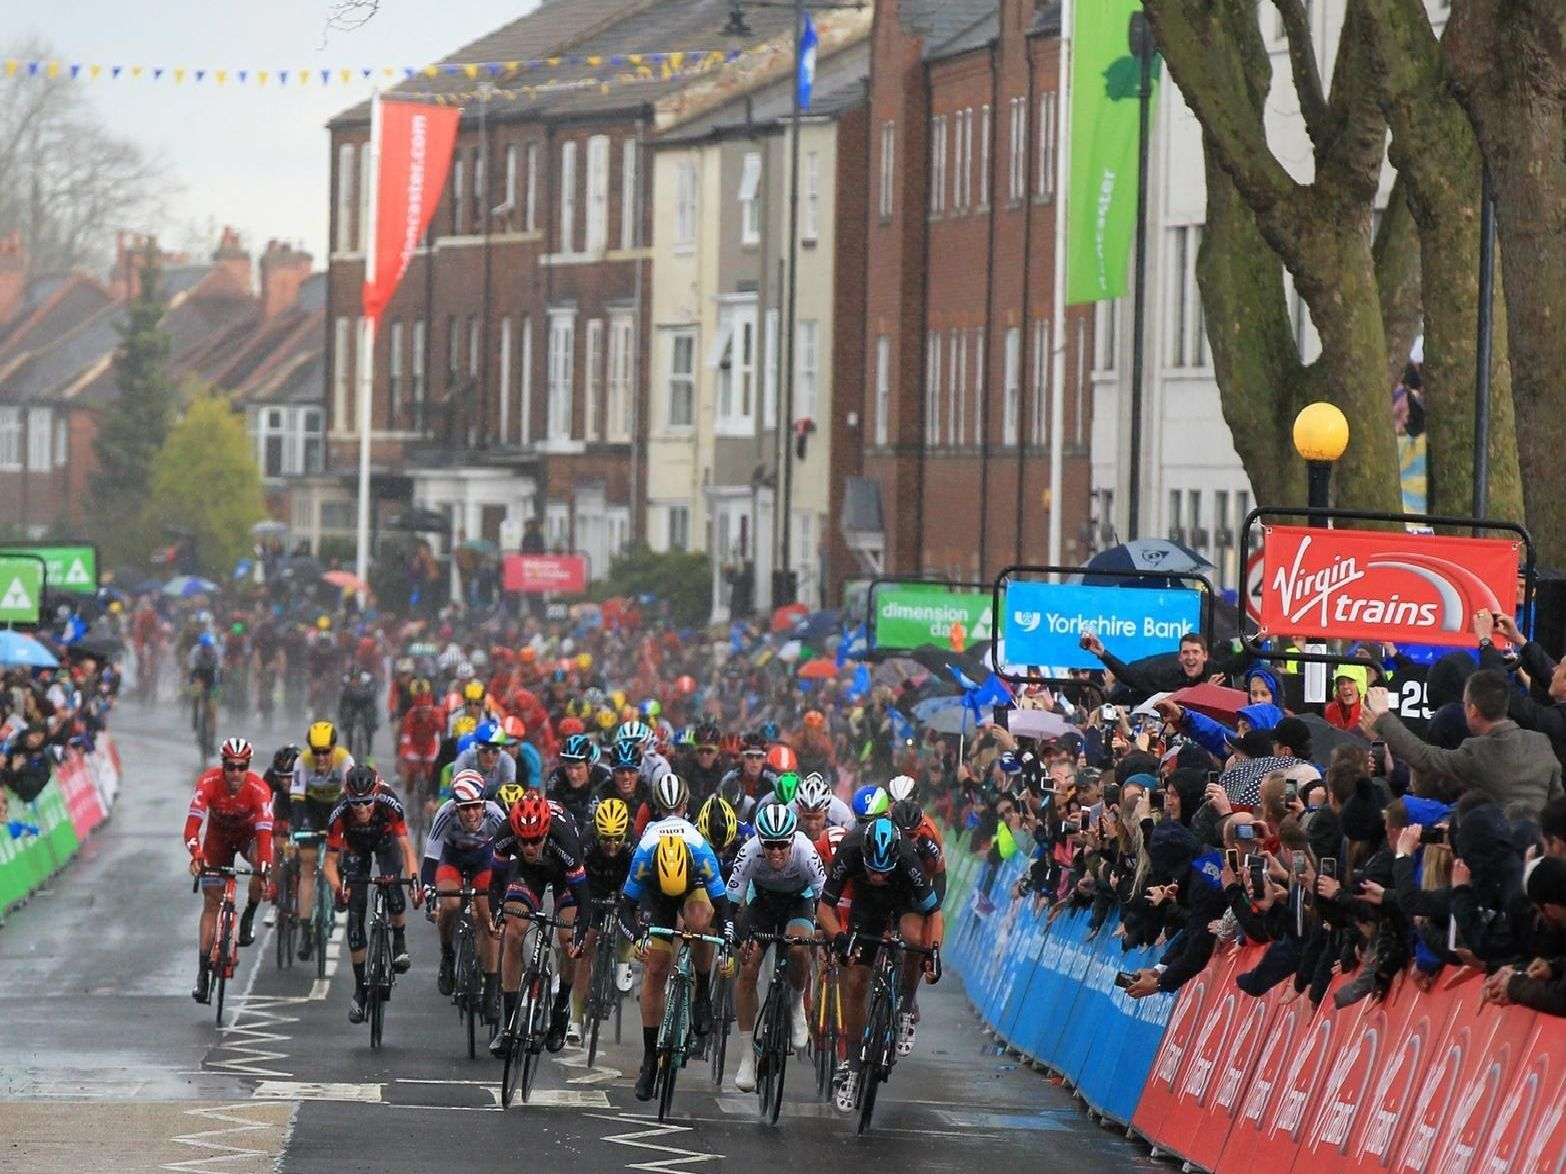 The Tour de Yorkshire is back in Doncaster - with the town chosen for the start of this year's race on May 2. The event takes place between May 2-5.